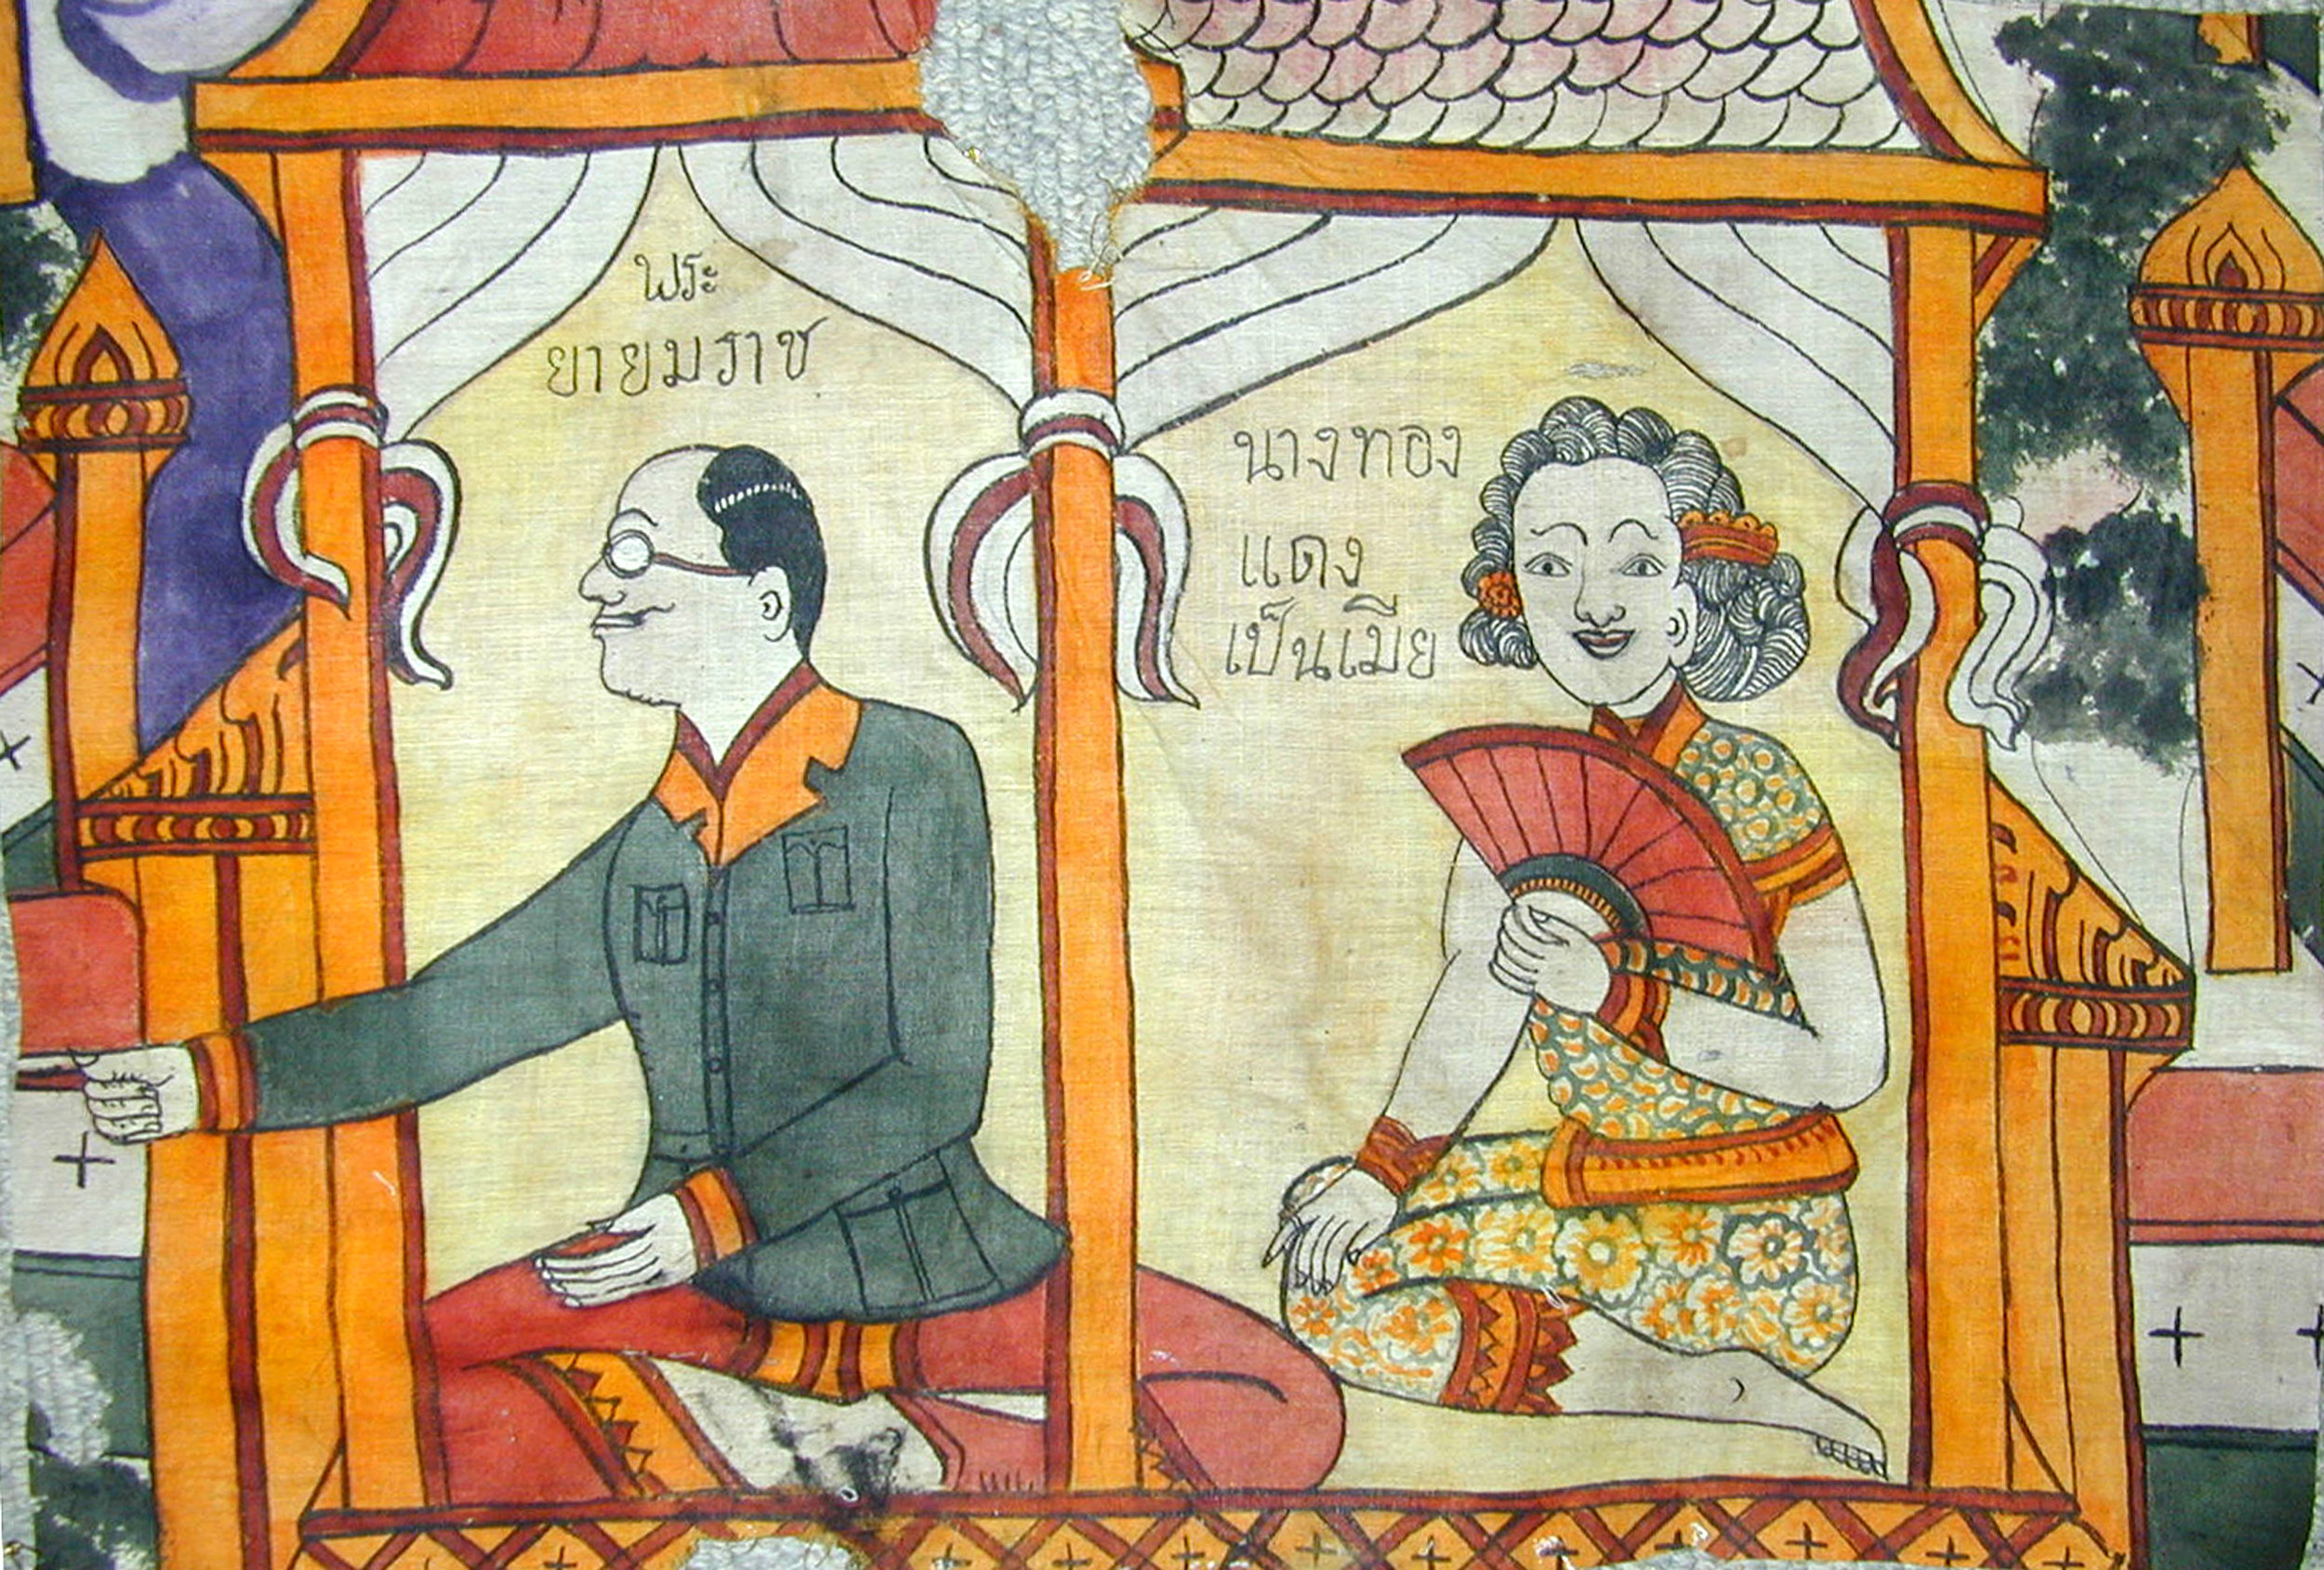 Temple painting on cloth, Siam, early to mid 20th century, fragment.